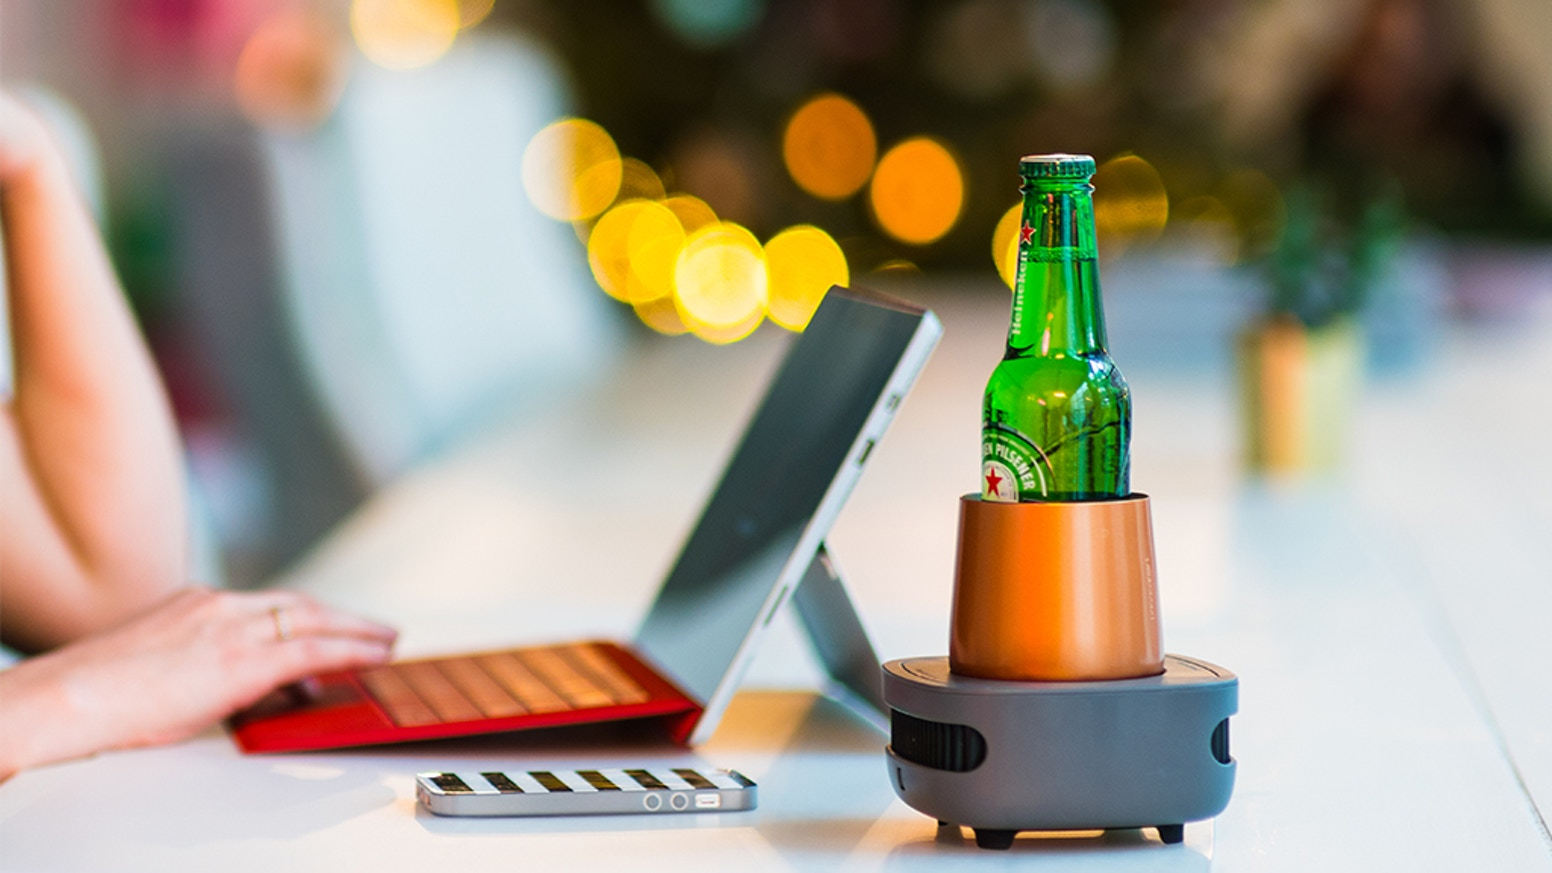 A smart device that cools down and keeps your drink cold till the last sip!